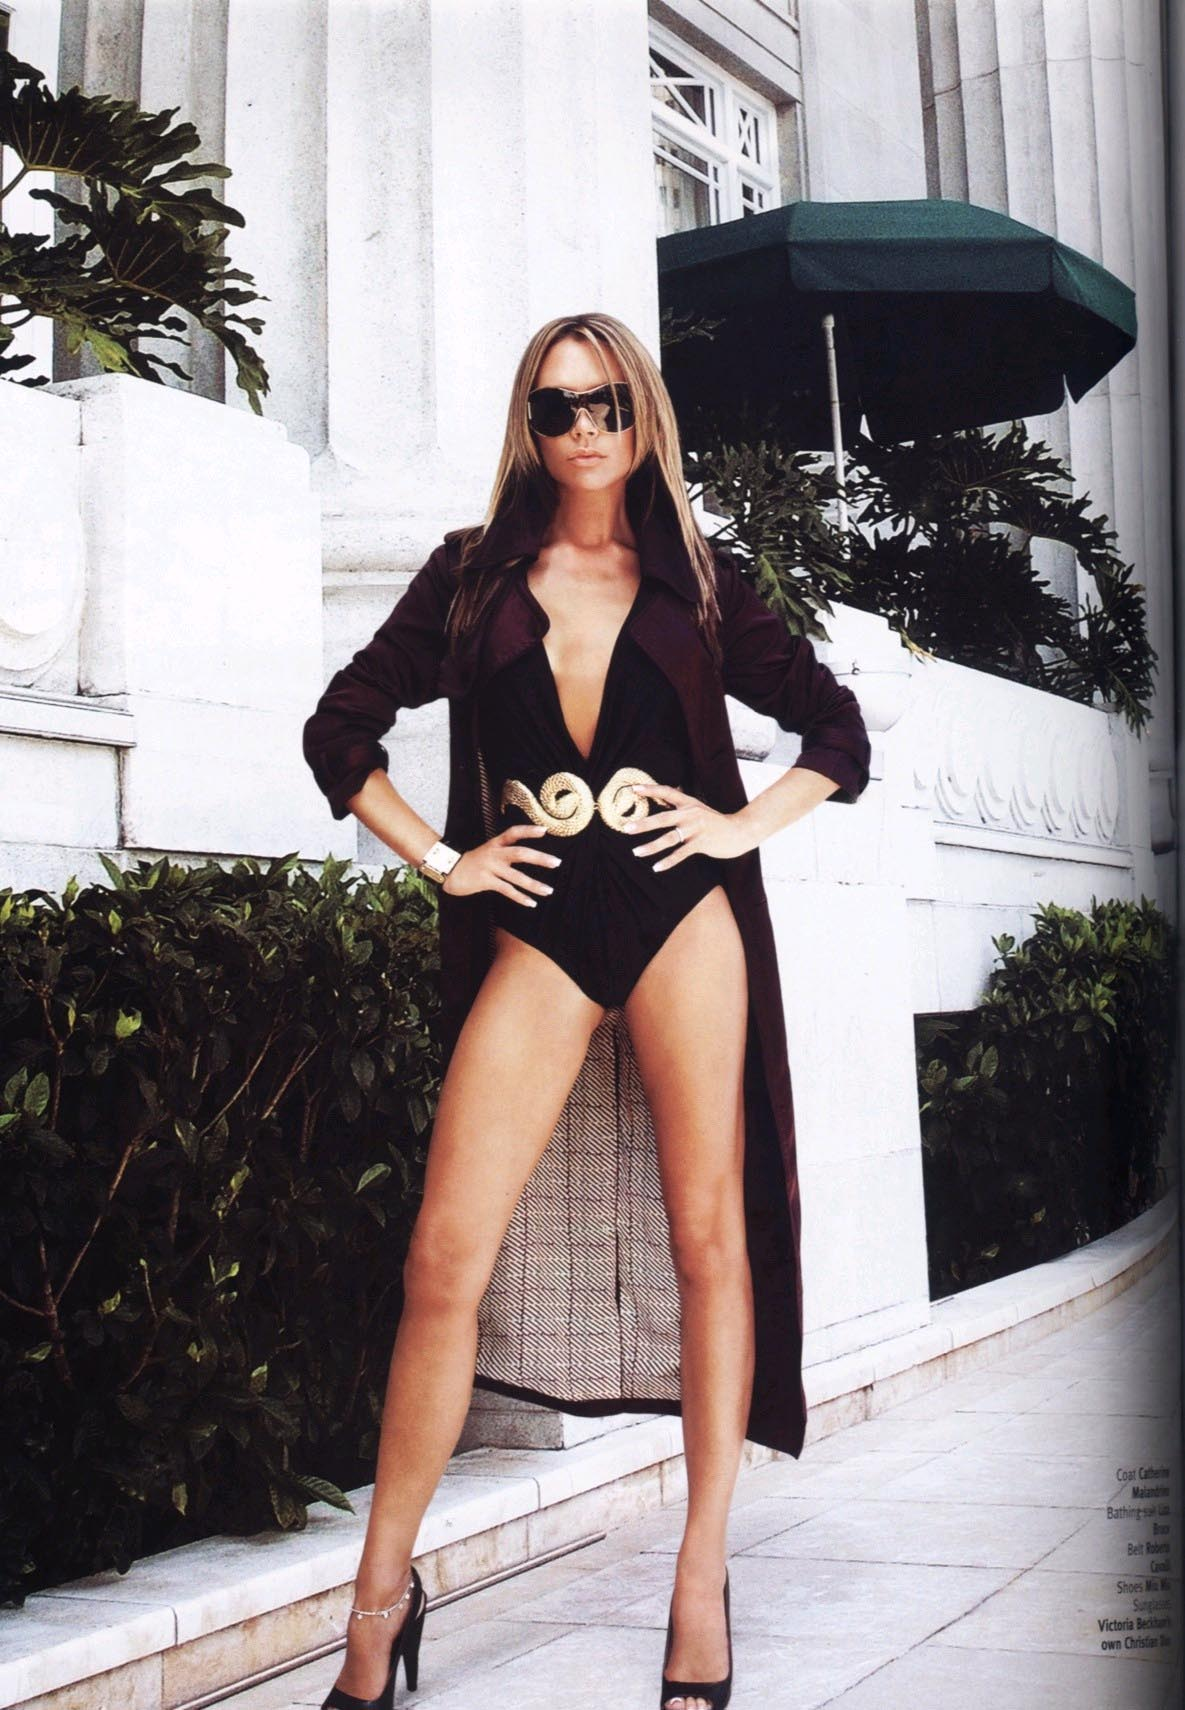 Виктория Бэкхэм - Victoria Beckham фото №41948: http://www.theplace.ru/photos/photo.php?id=41948